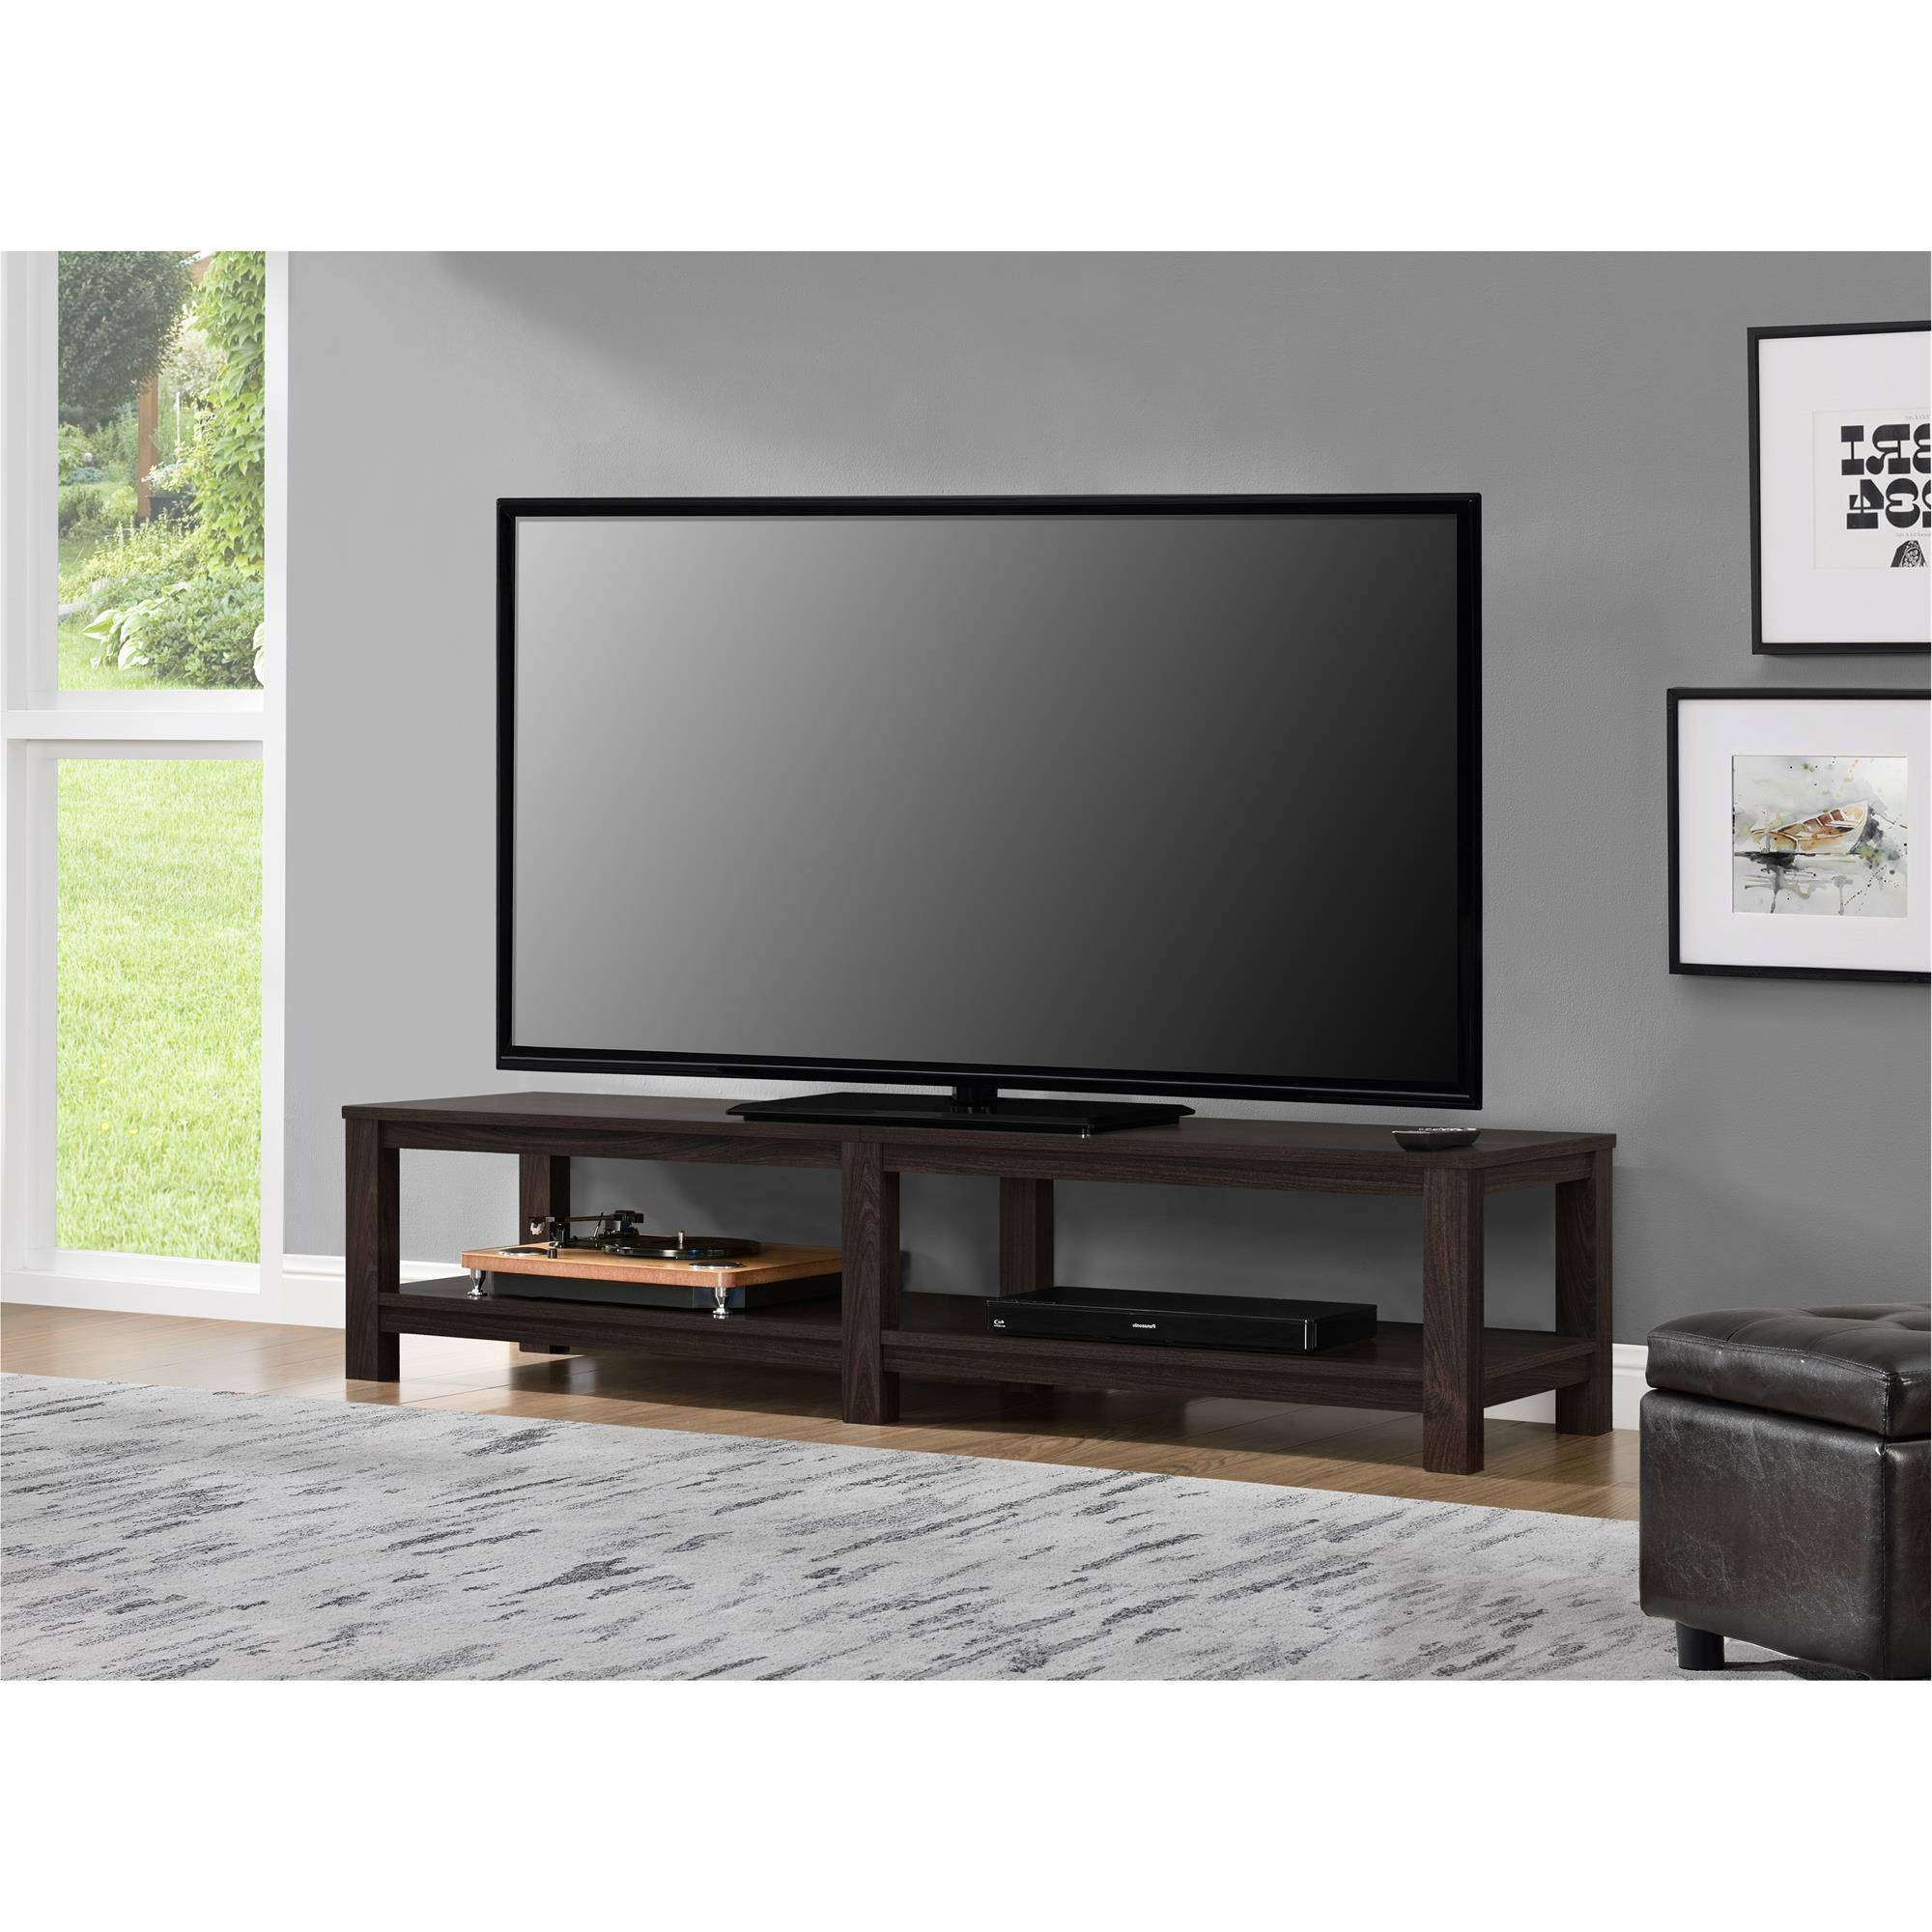 Bedroom Design : Marvelous Television Tables Corner Tv Shelf Low Throughout Tv Stands For Plasma Tv (View 1 of 15)